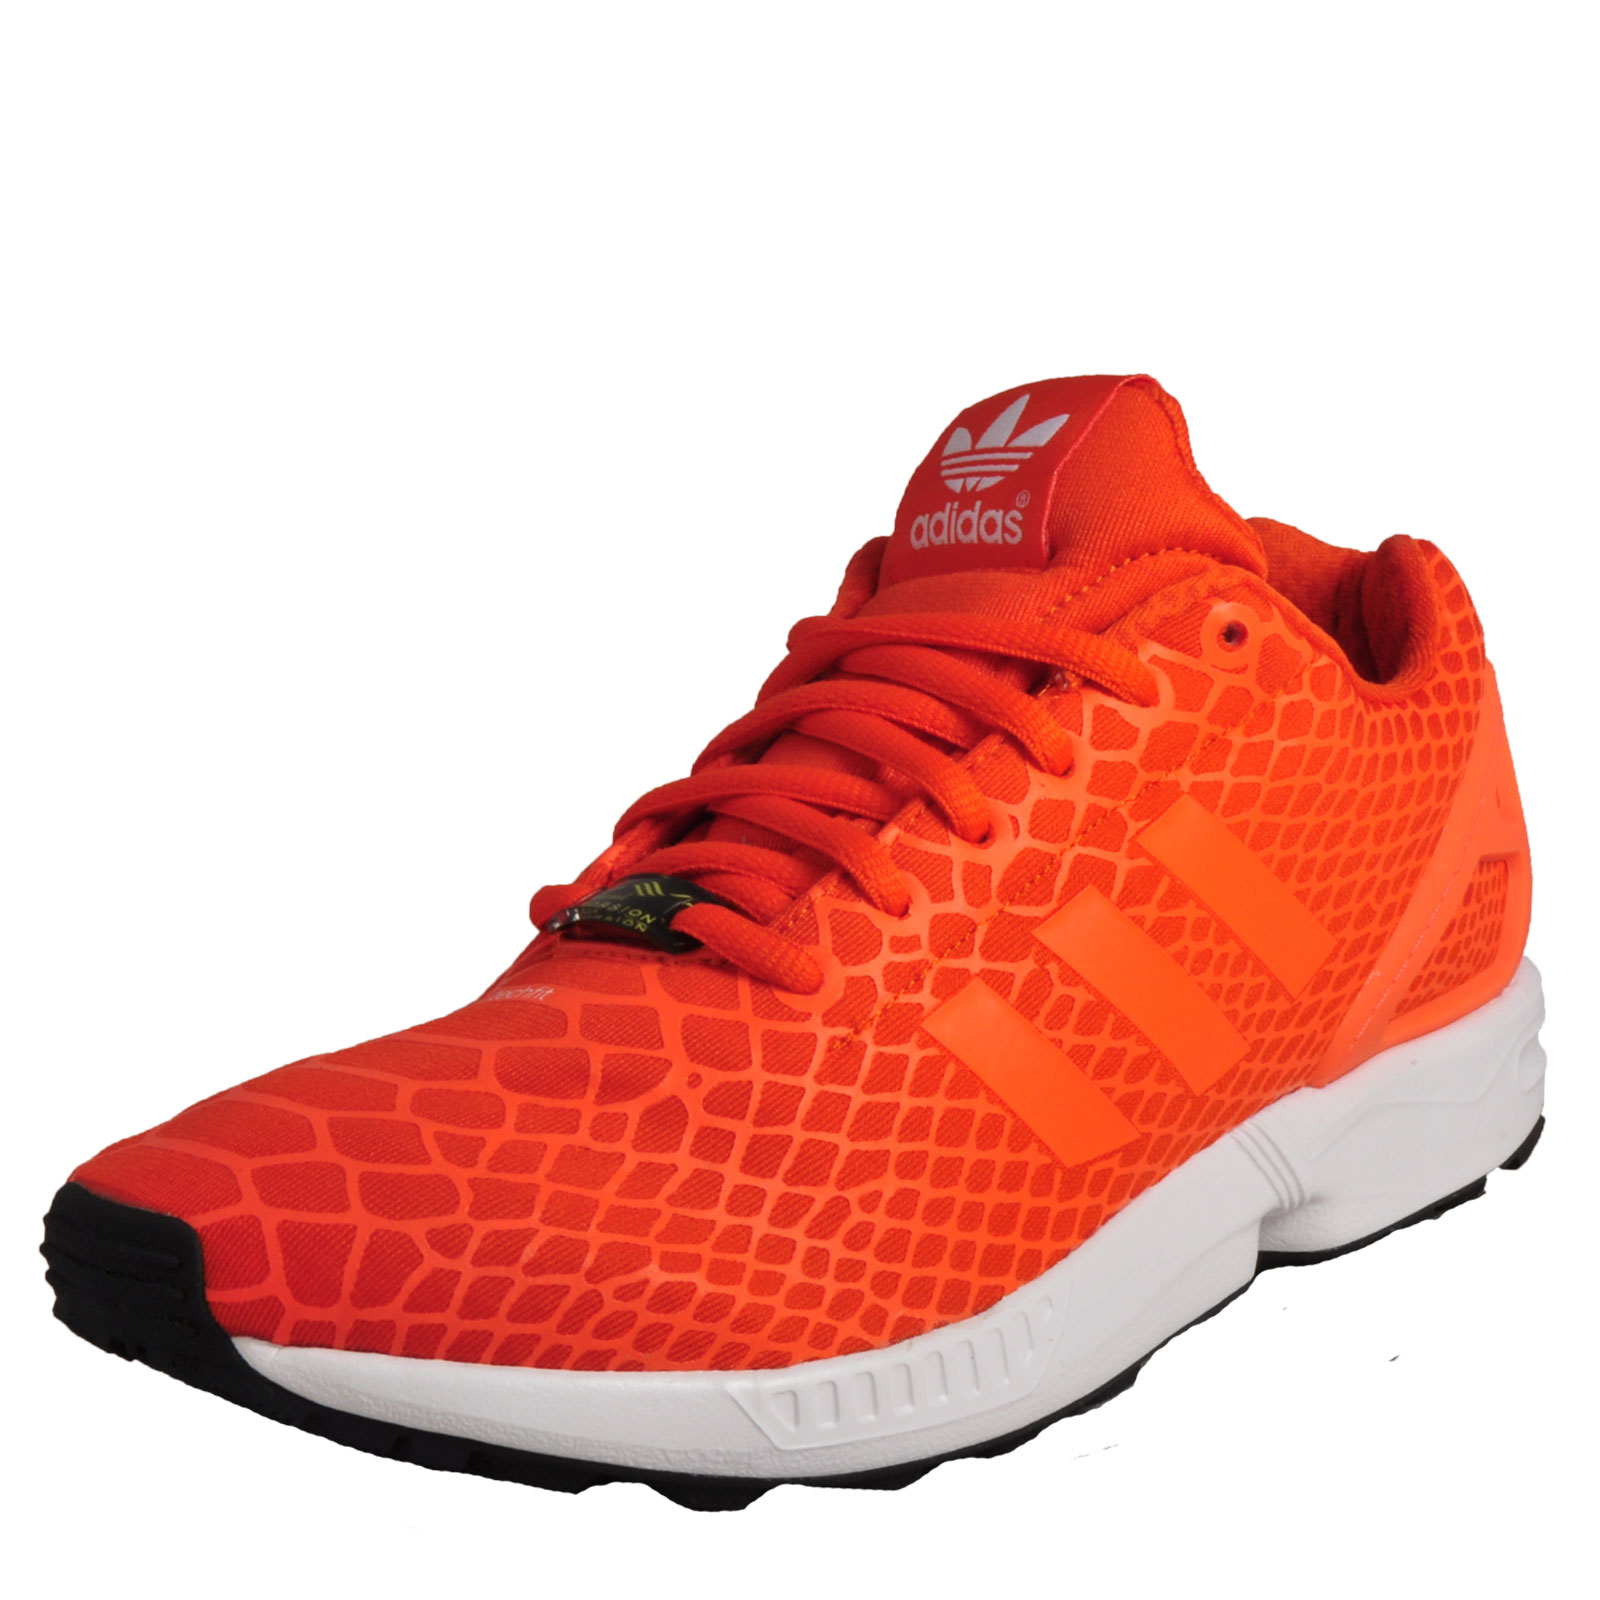 Adidas Originals ZX Flux Techfit Men's Running Shoes Gym Fitness Trainers  Orange